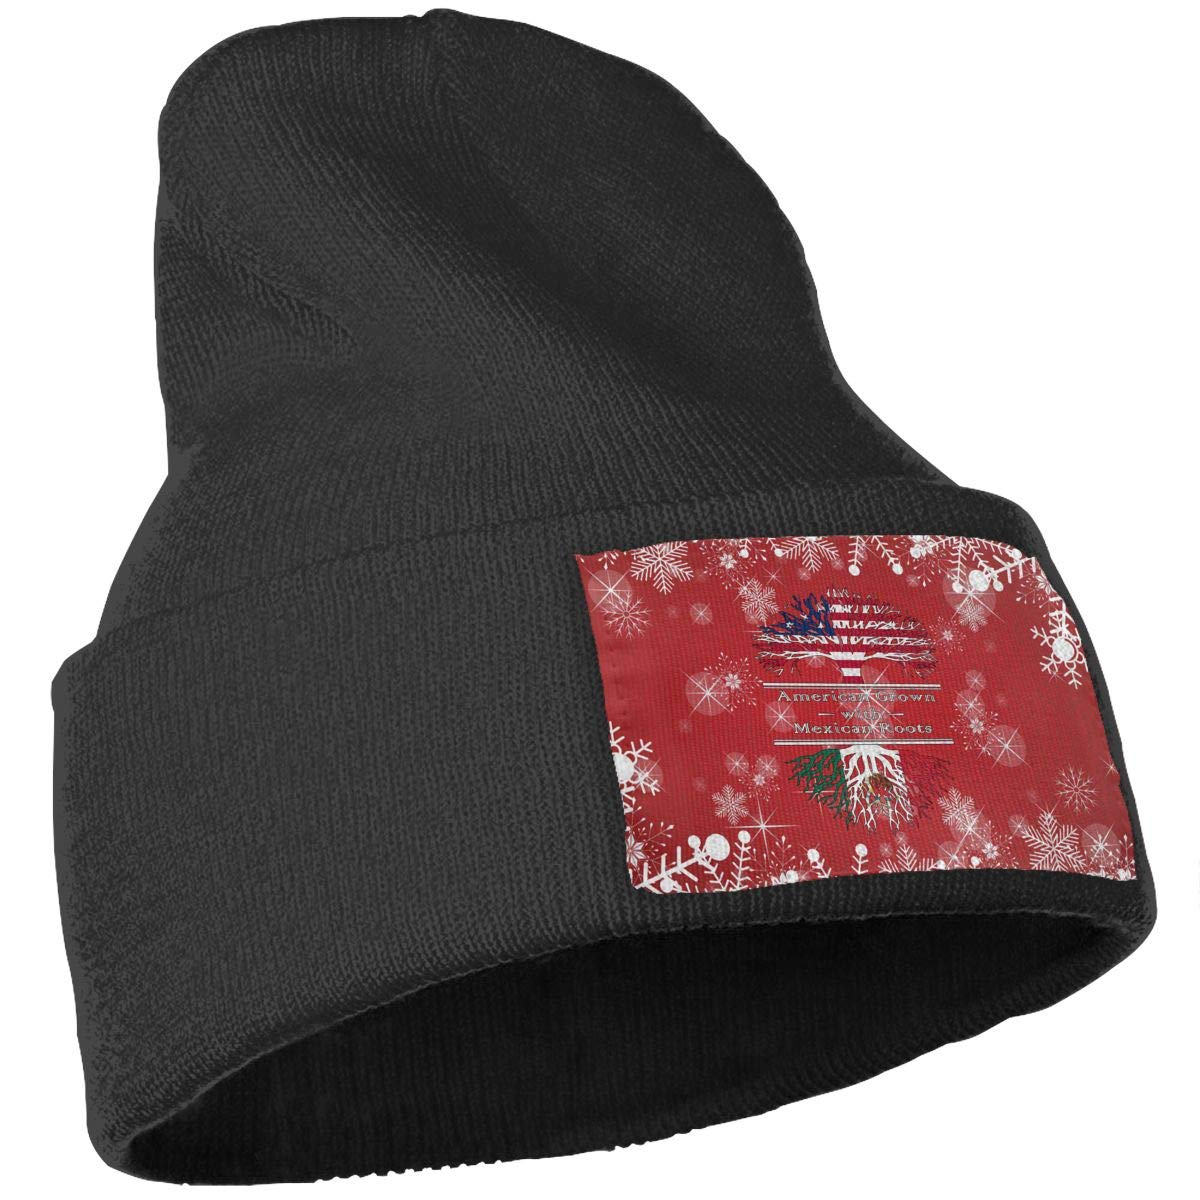 American Grown Mexican Roots-3 Men Women Knit Hats Stretchy /& Soft Ski Cap Beanie